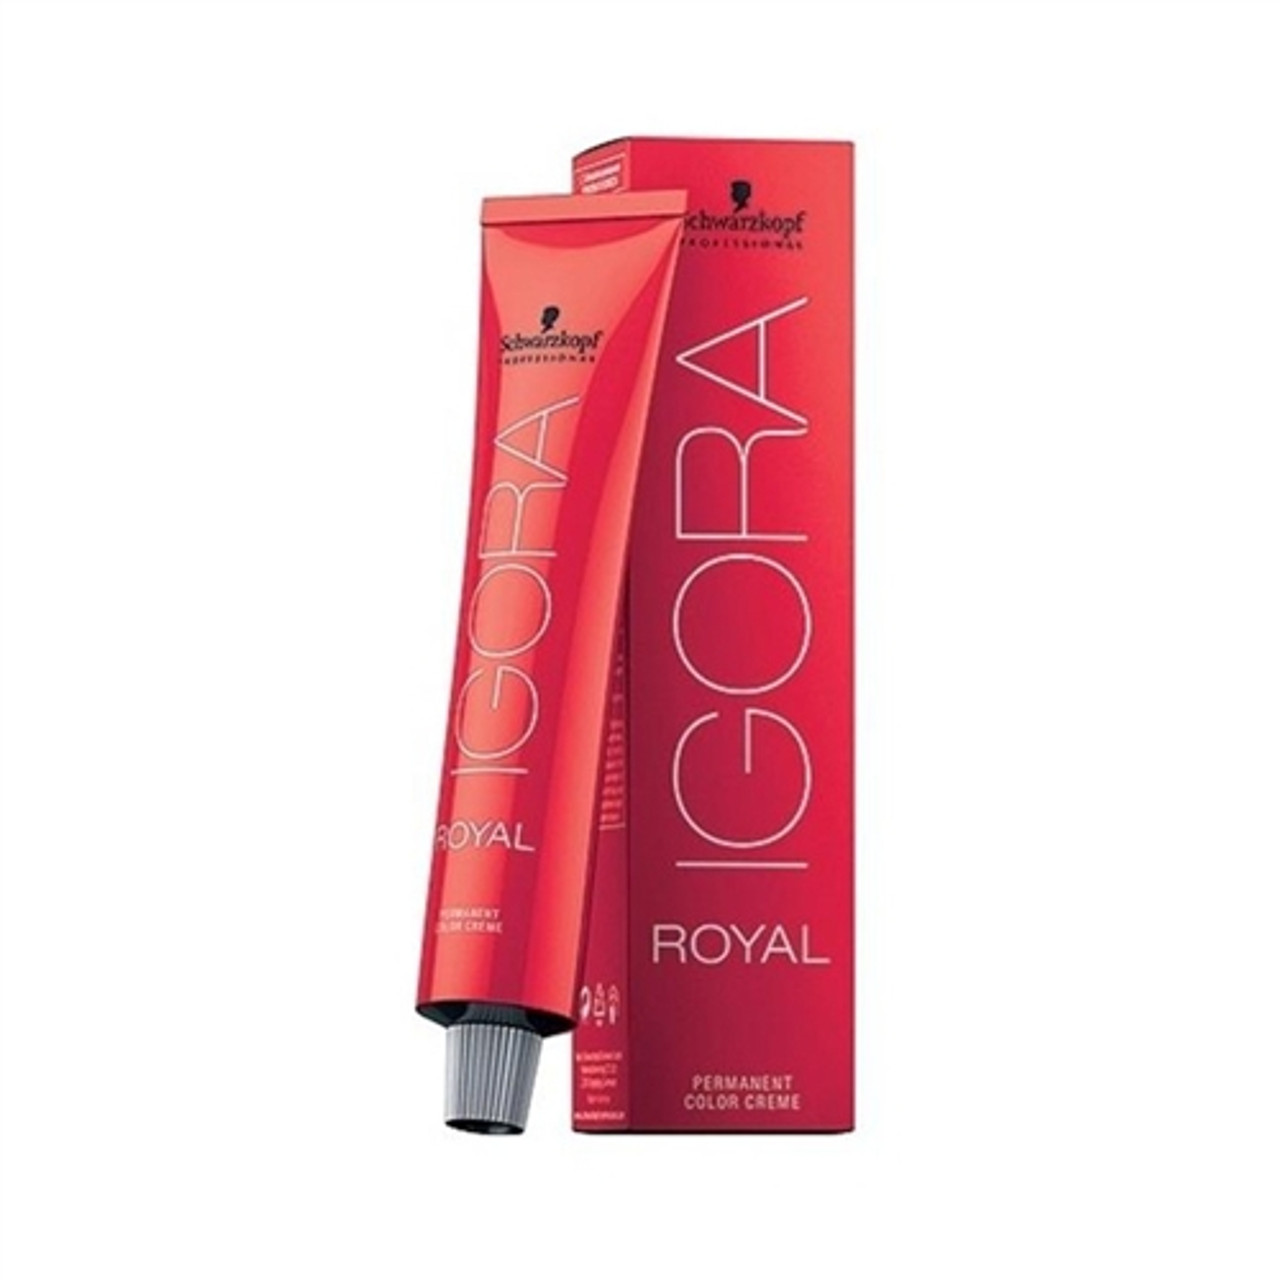 1-1 Blue Black  Igora Royal Permanent Color Creme -